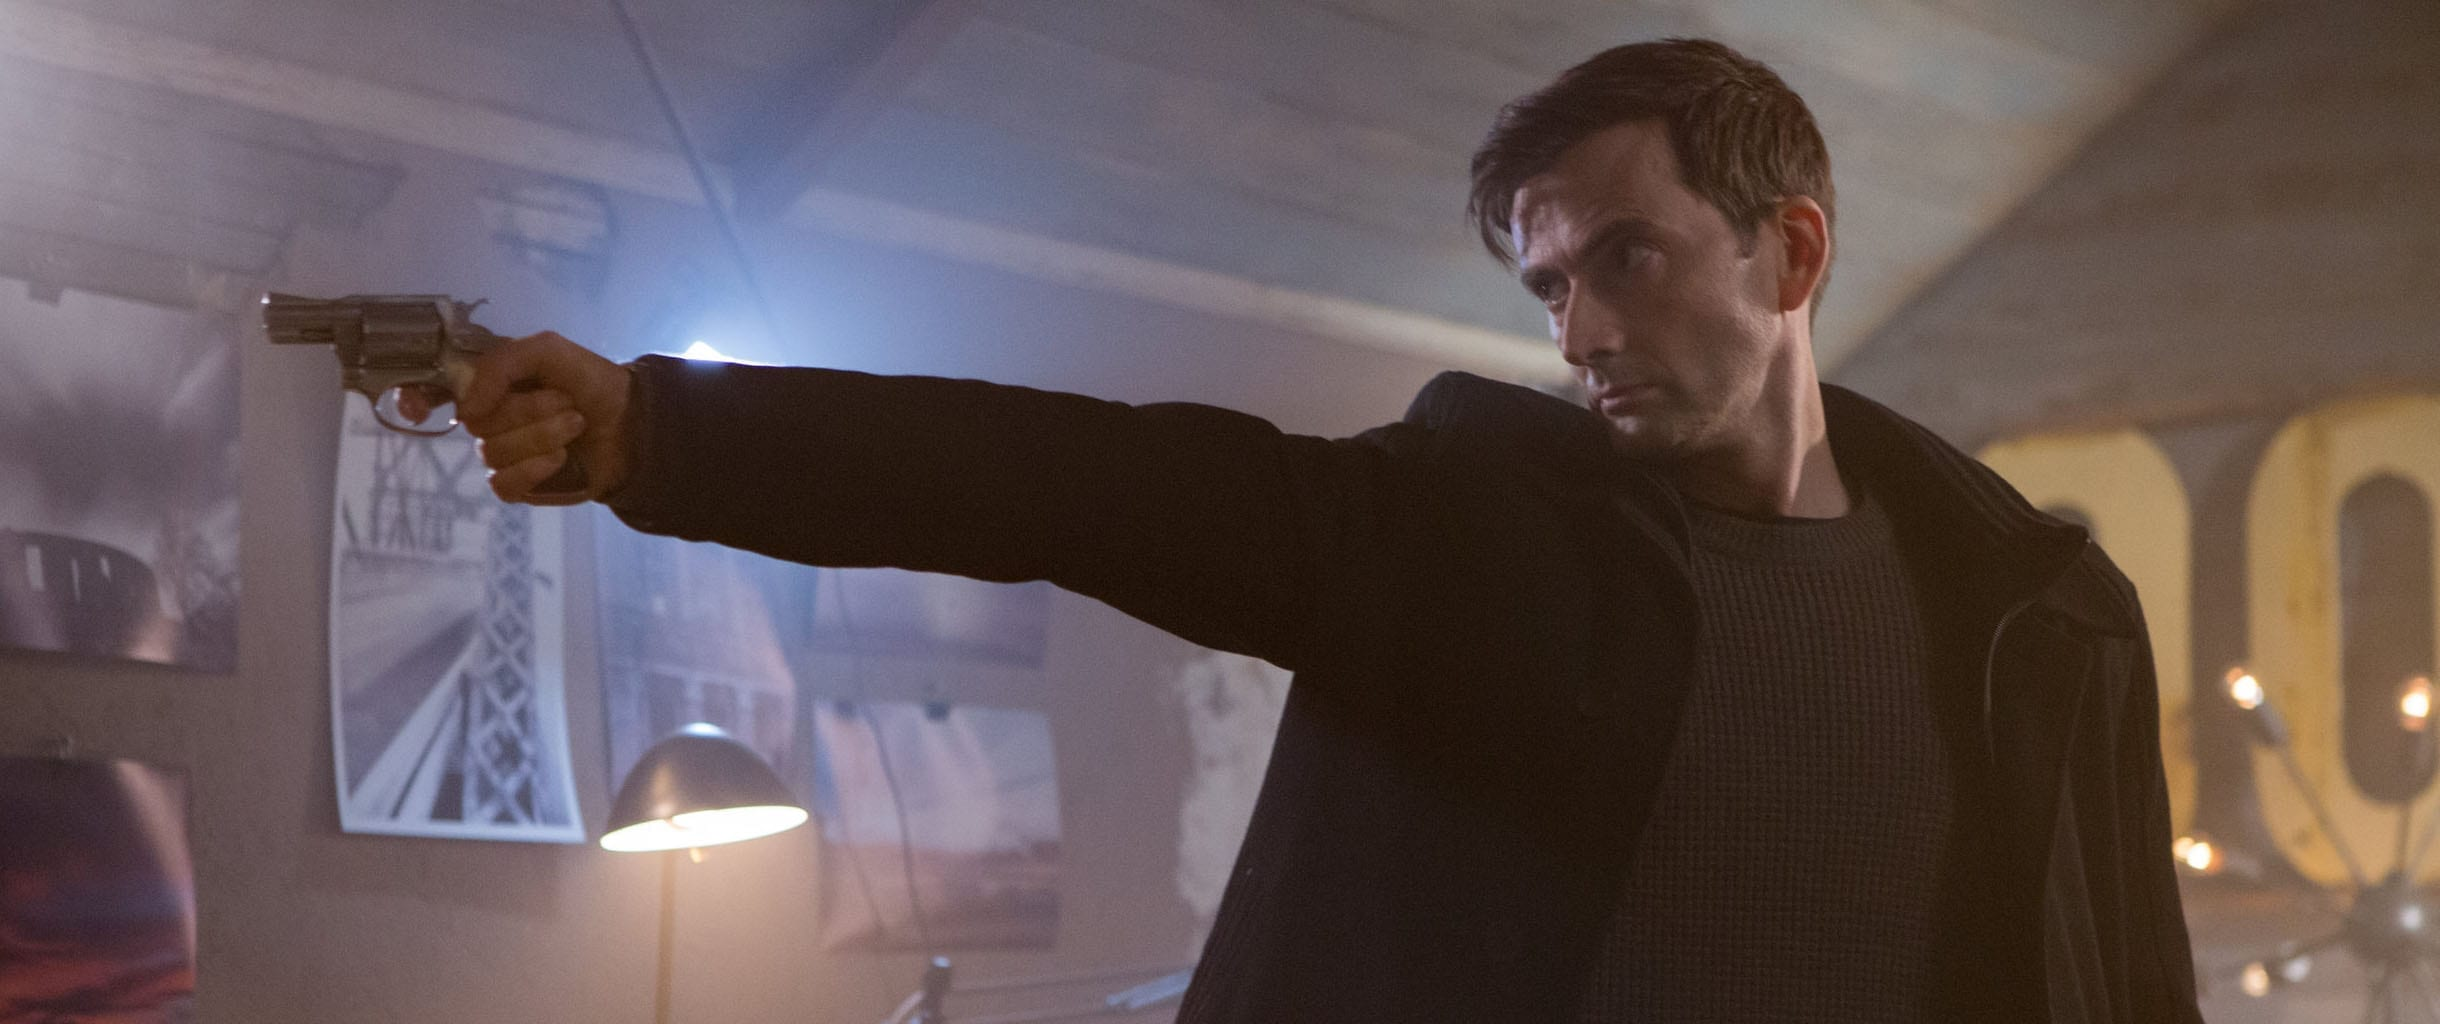 'Bad Samaritan' is the tale of two thieves uncovering more than what they bargained for when breaking into a house they thought would be an easy score.